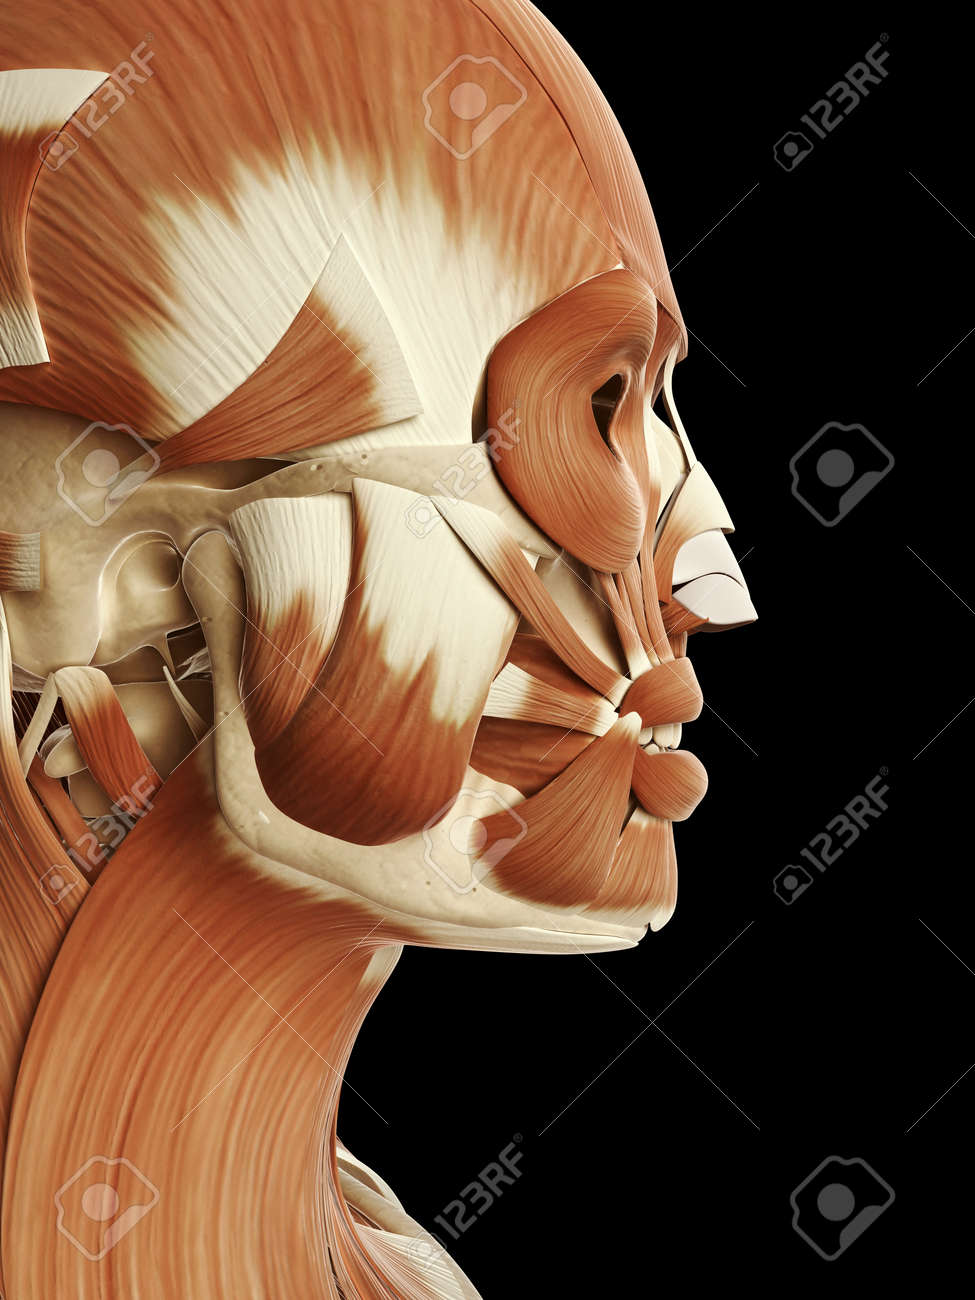 medical illustration of the head and face muscles Stock Illustration - 22818711